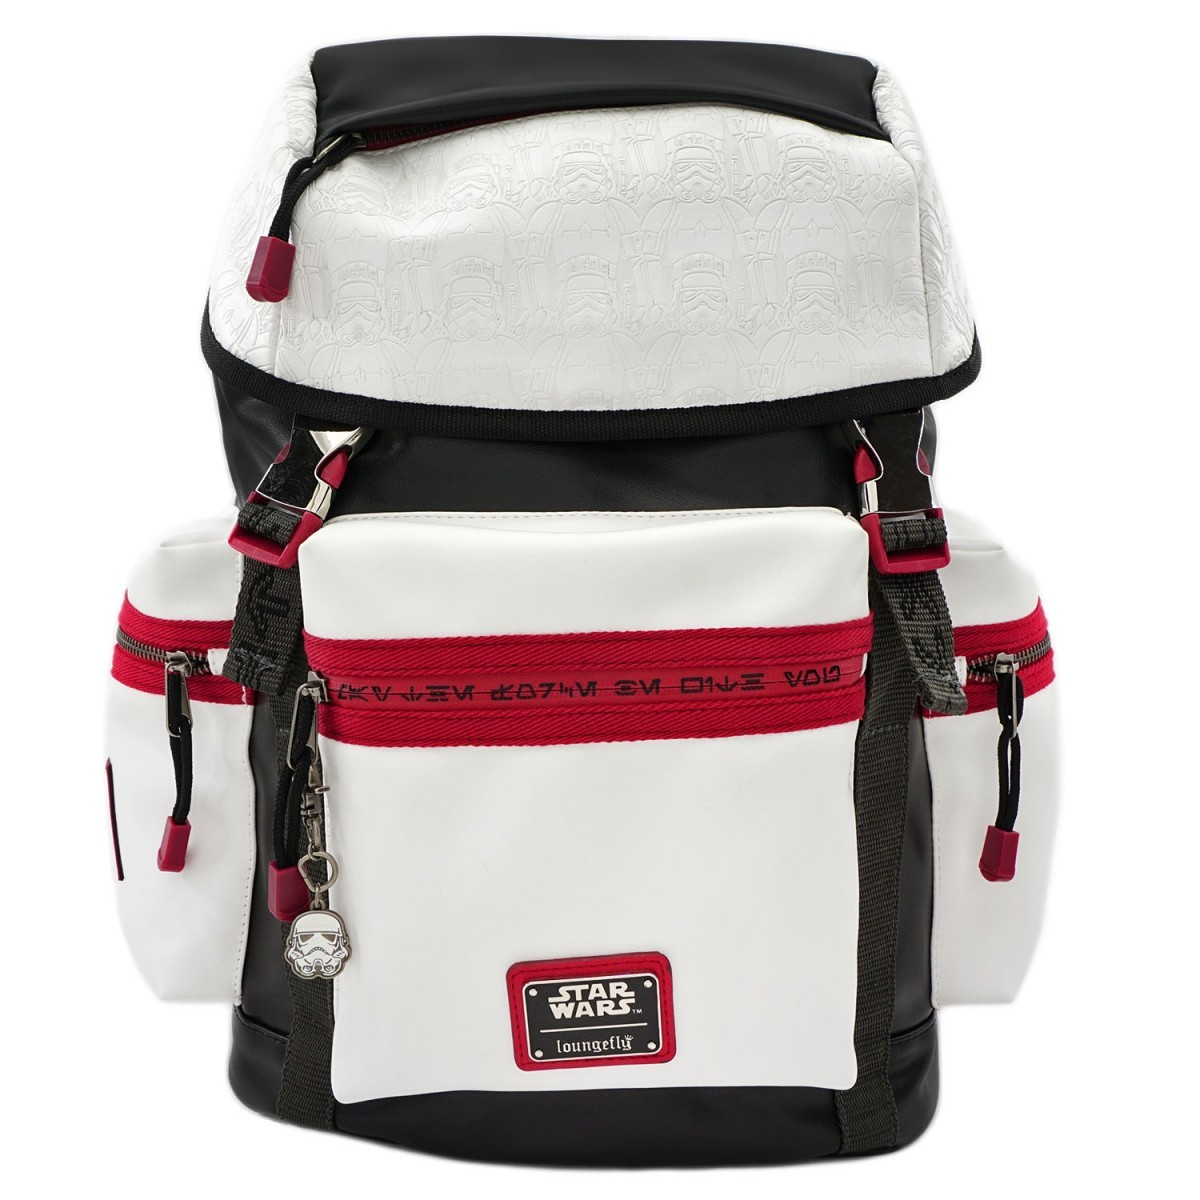 Loungefly: Star Wars - Stormtrooper Backpack image